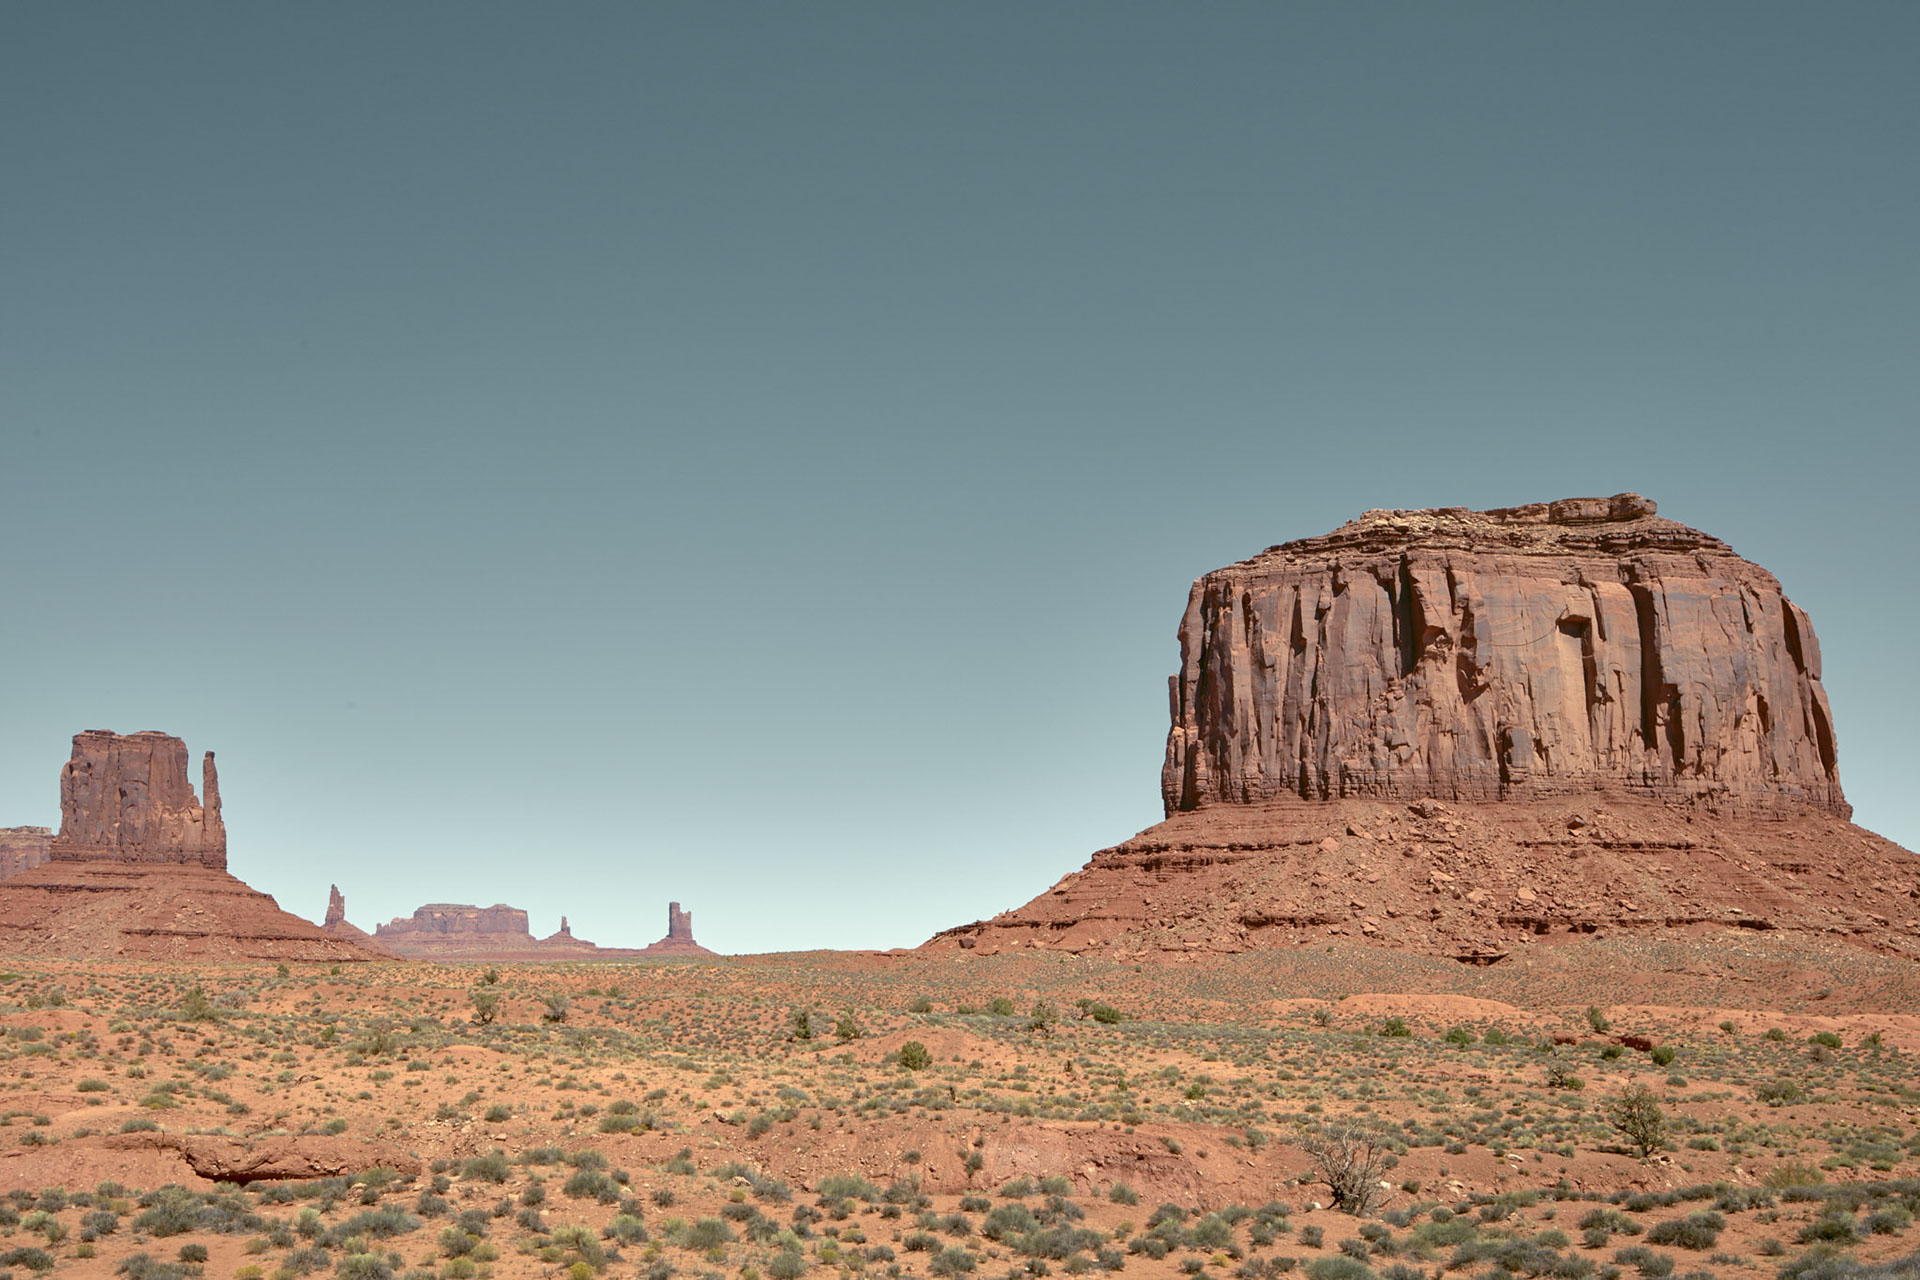 Digital Photography: Exploring Monument Valley, Arizona